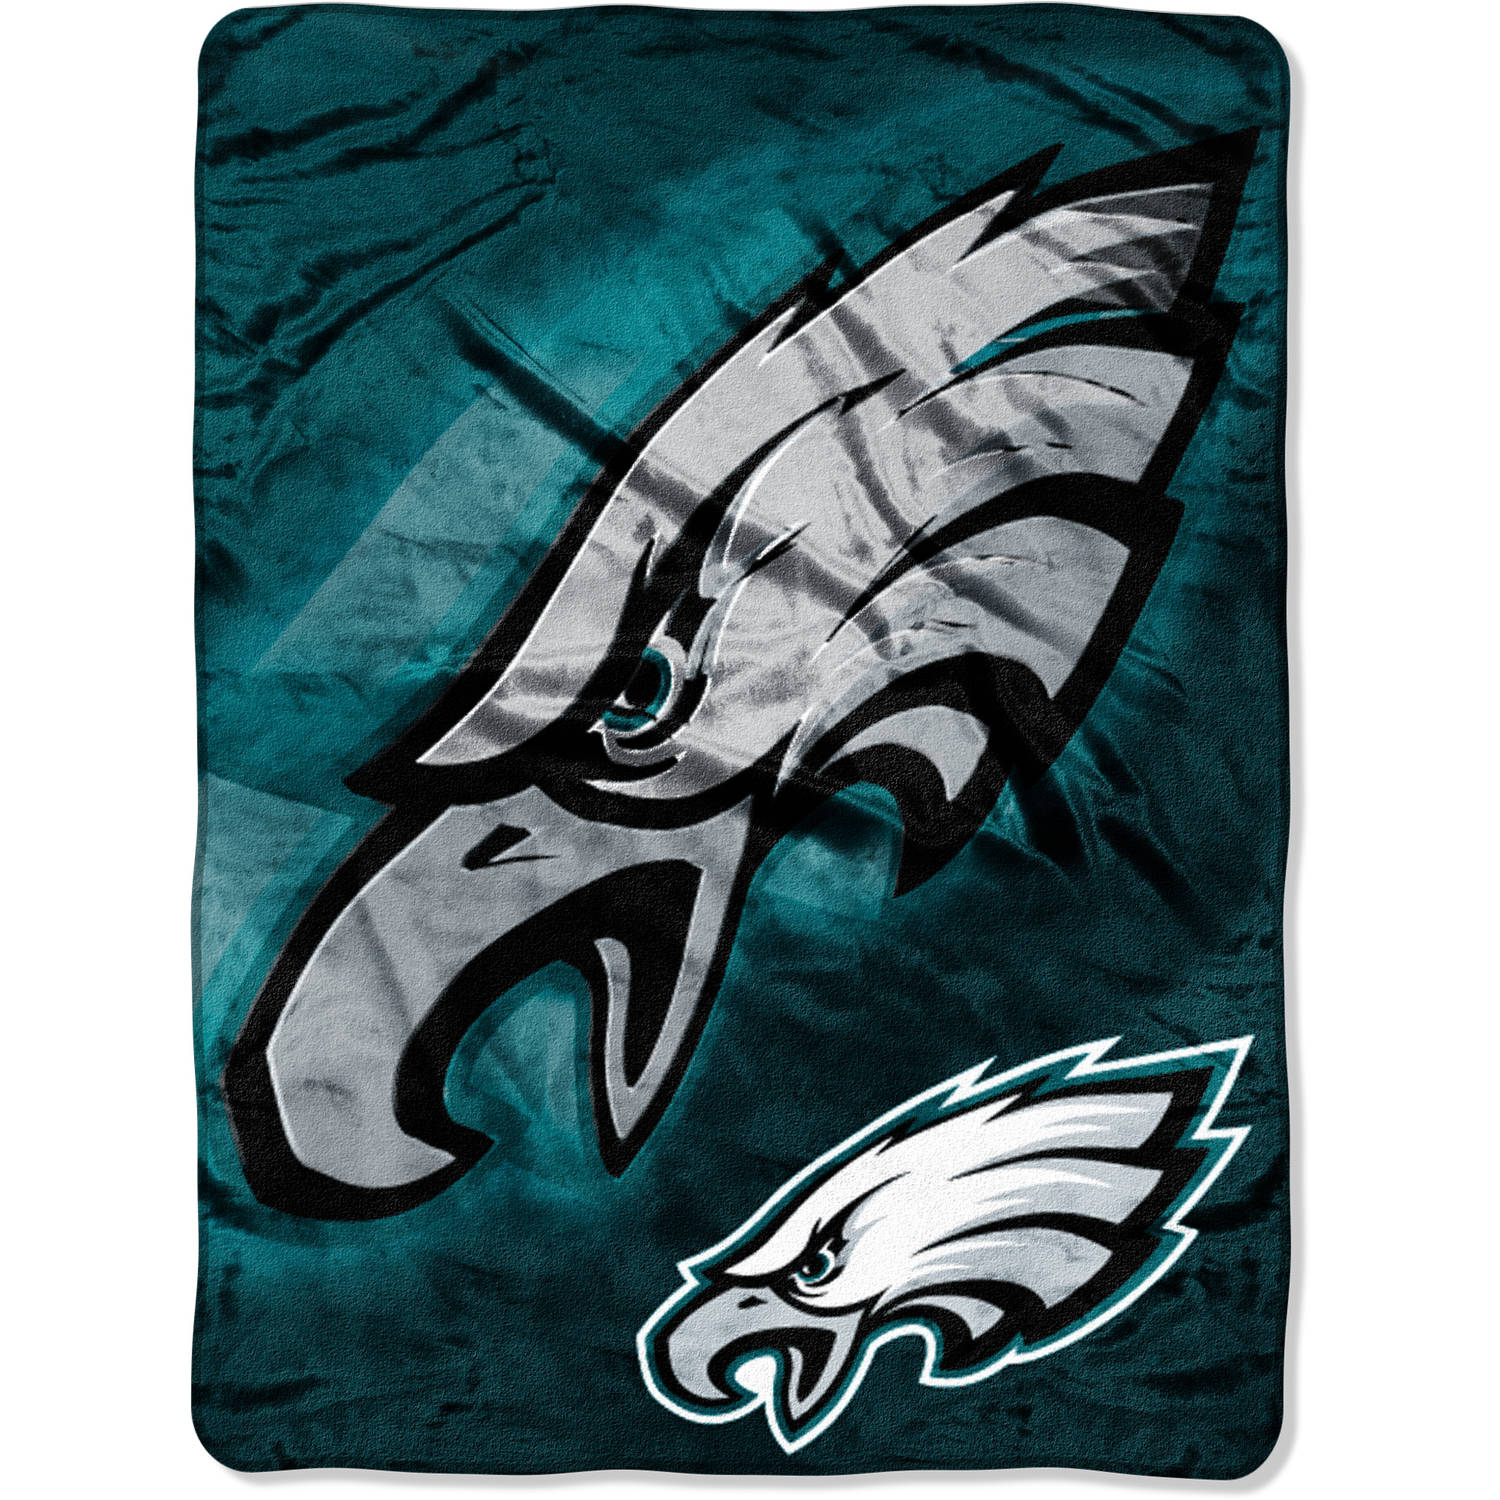 "NFL Philadelphia Eagles 60"" x 80"" Oversized Micro Raschel Throw"